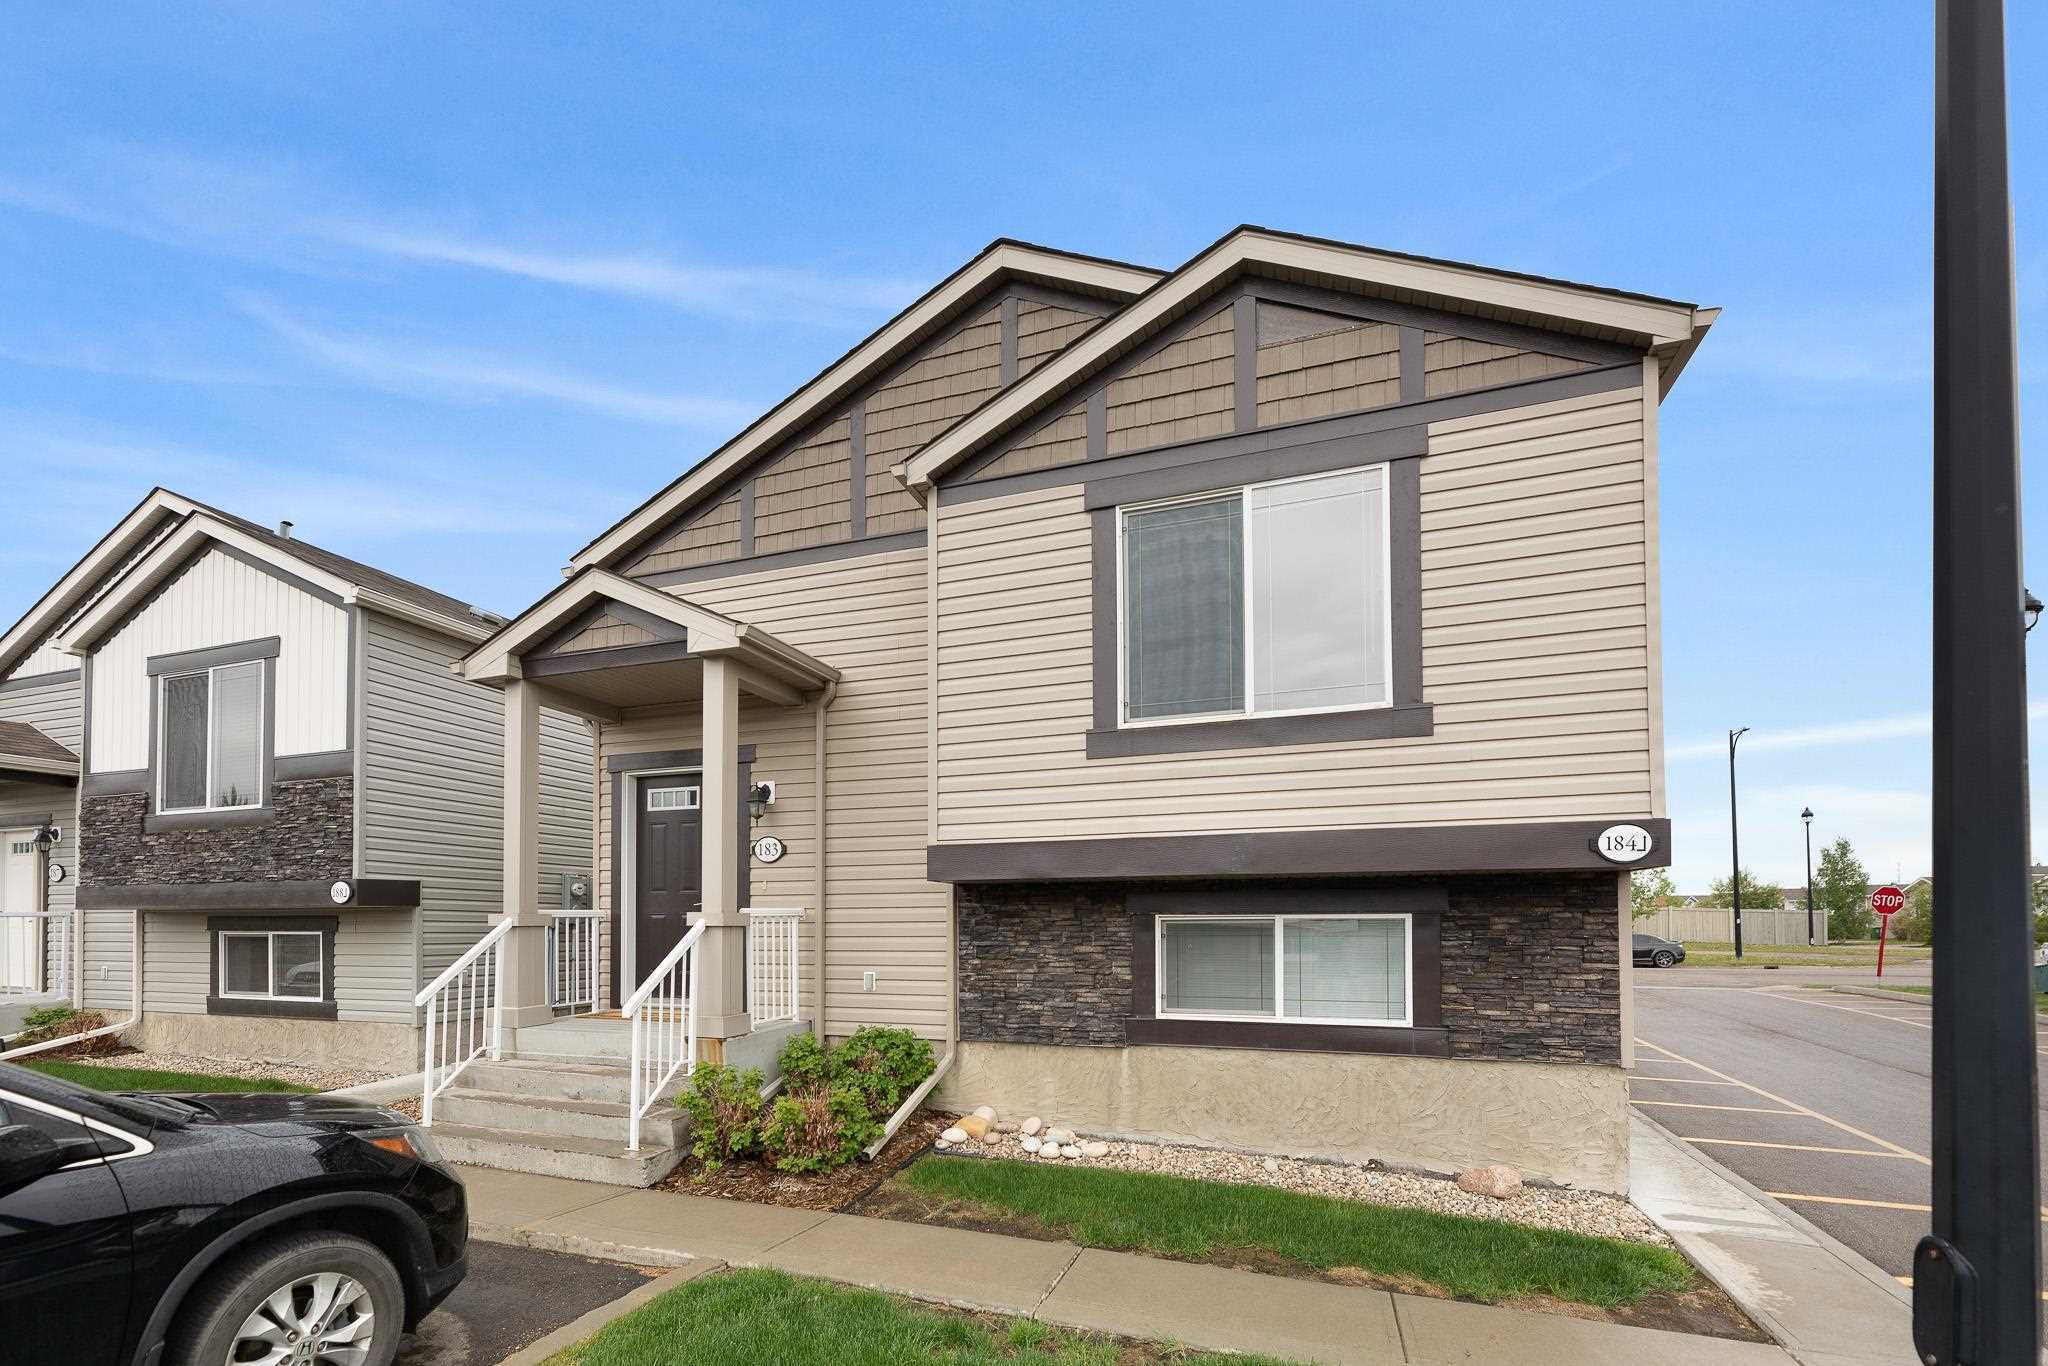 Photo of #183 142 Selkirk Place